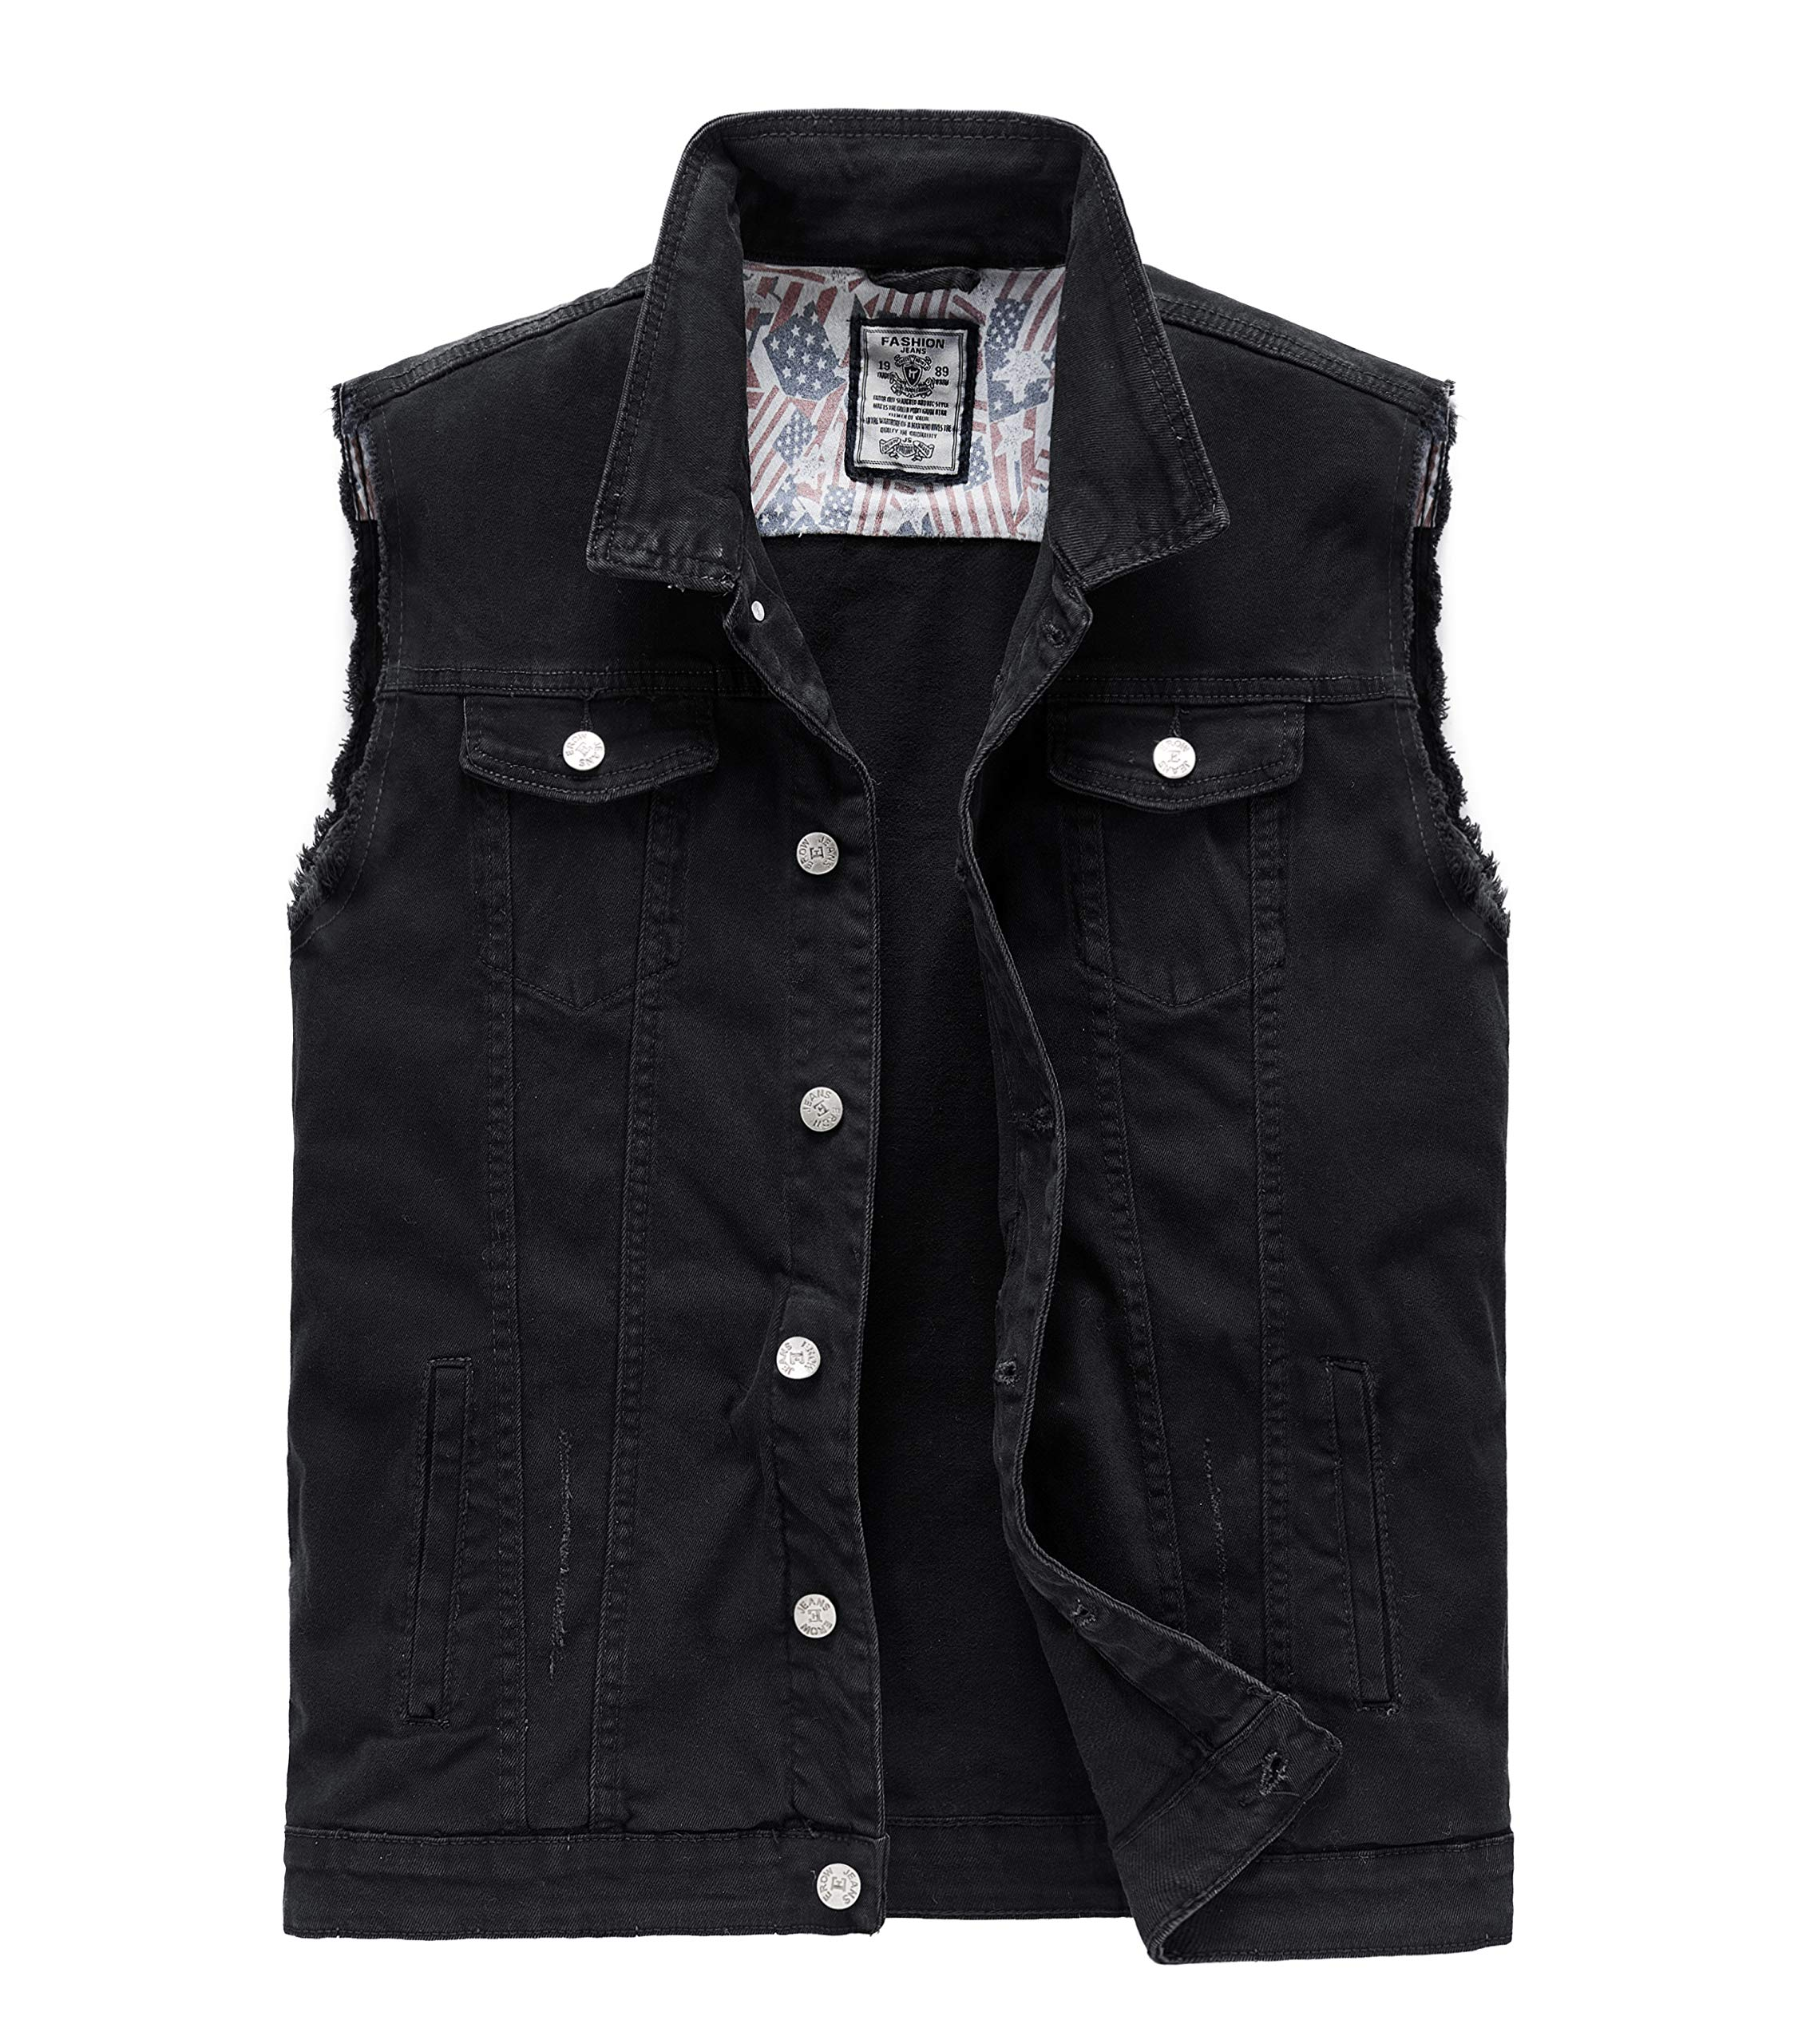 RongYue Men's Casual Button-Down Denim Vest Sleeveless Jacket with Broken Holes Black by RongYue